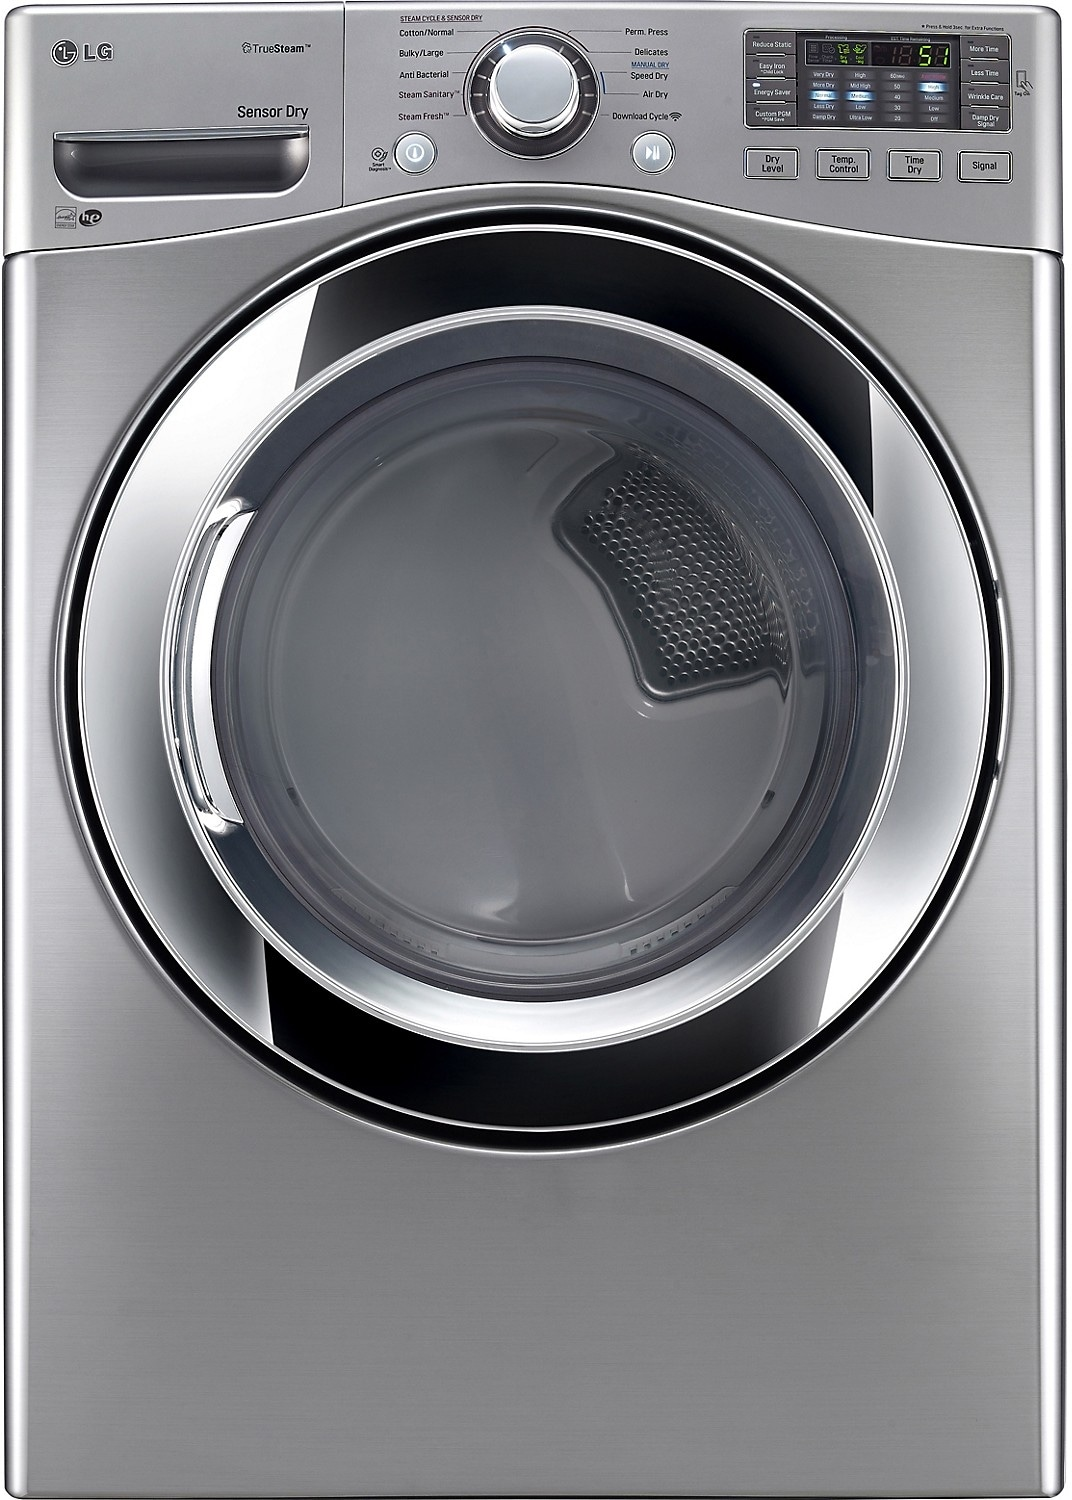 LG 7.4 Cu. Ft. Ultra-Large Capacity Electric SteamDryer™ – Graphite Steel